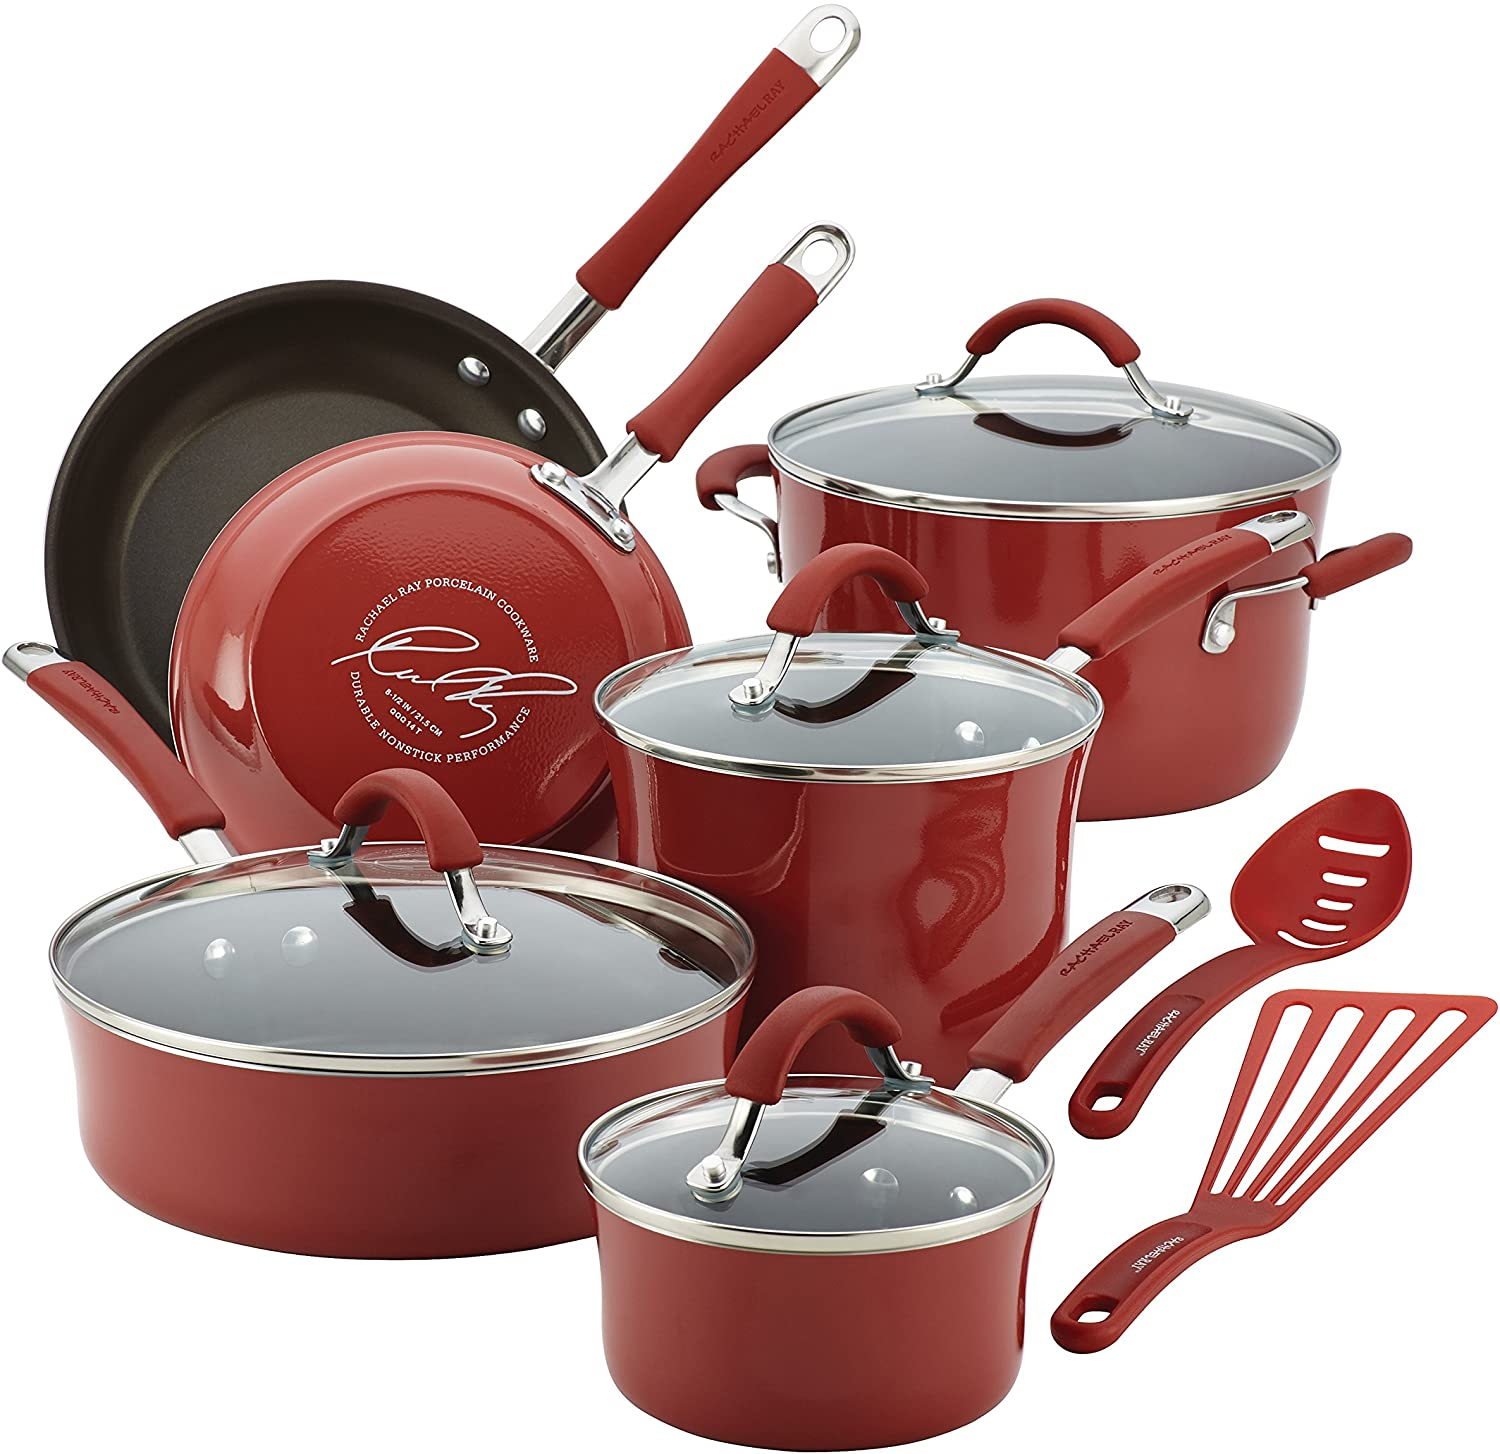 Rachael Ray Cucina 12 Piece Nonstick Cookware Set, Cranberry Red